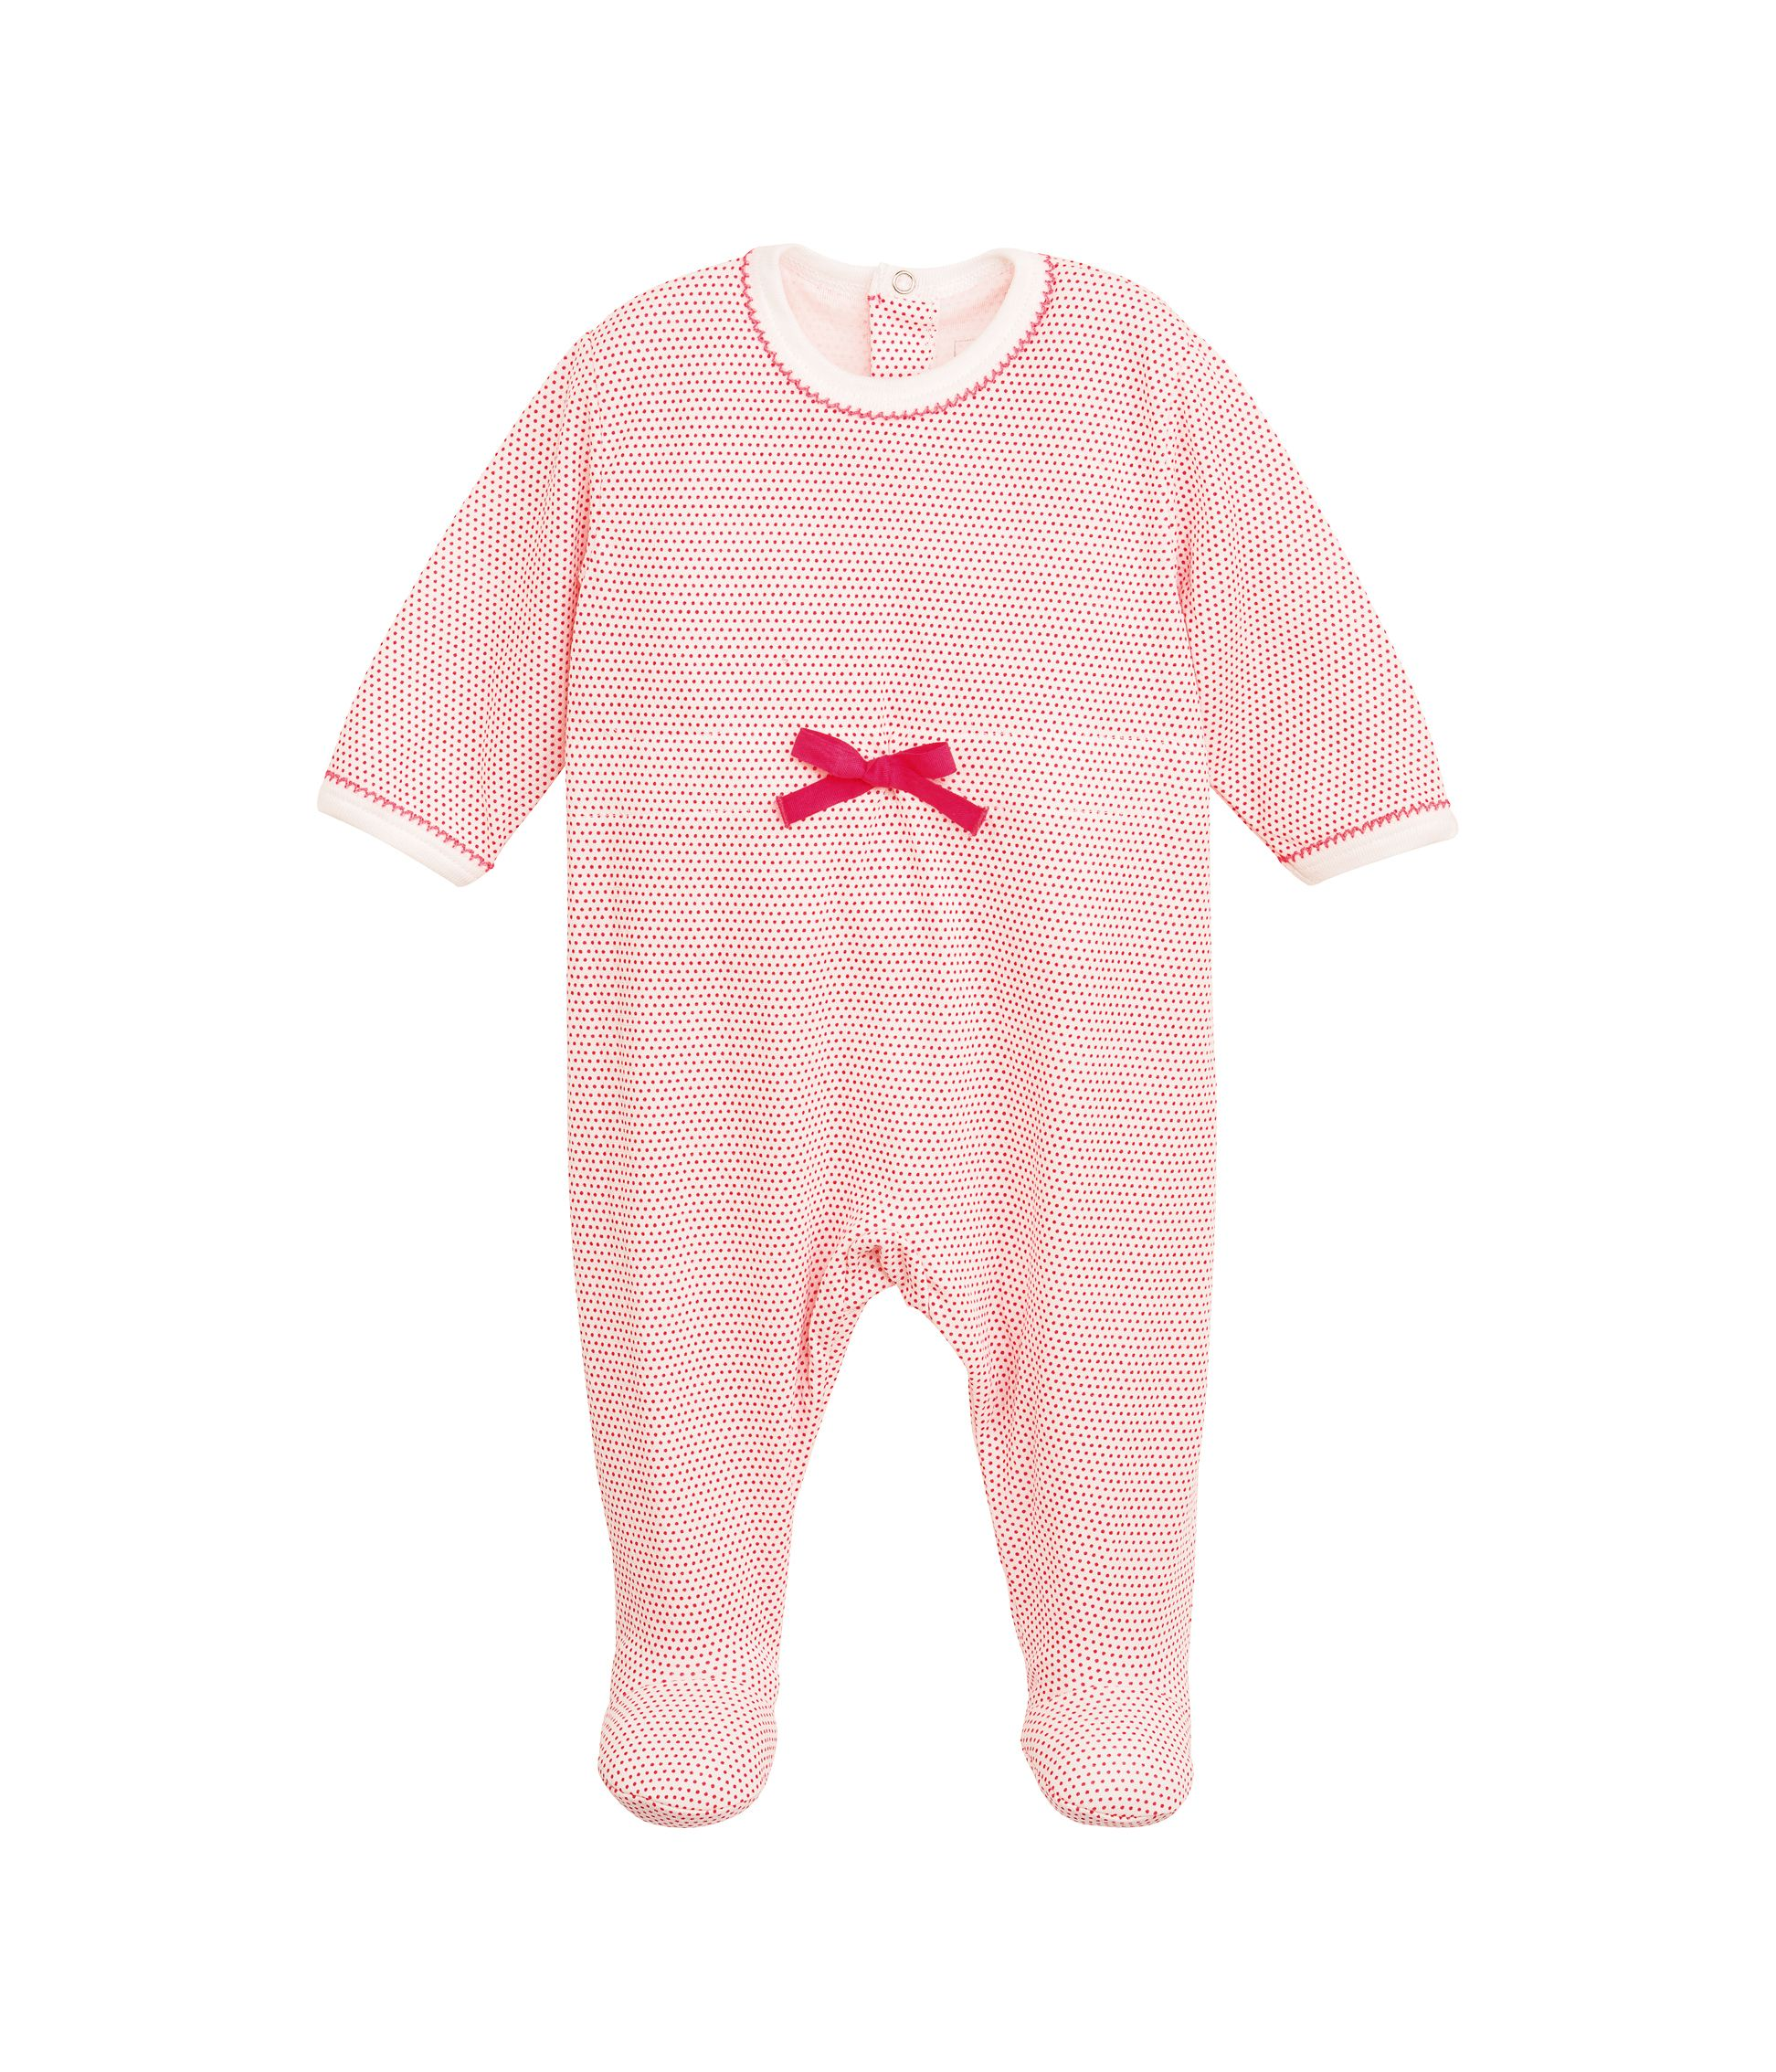 Baby girl`s back opening printed sleepsuit